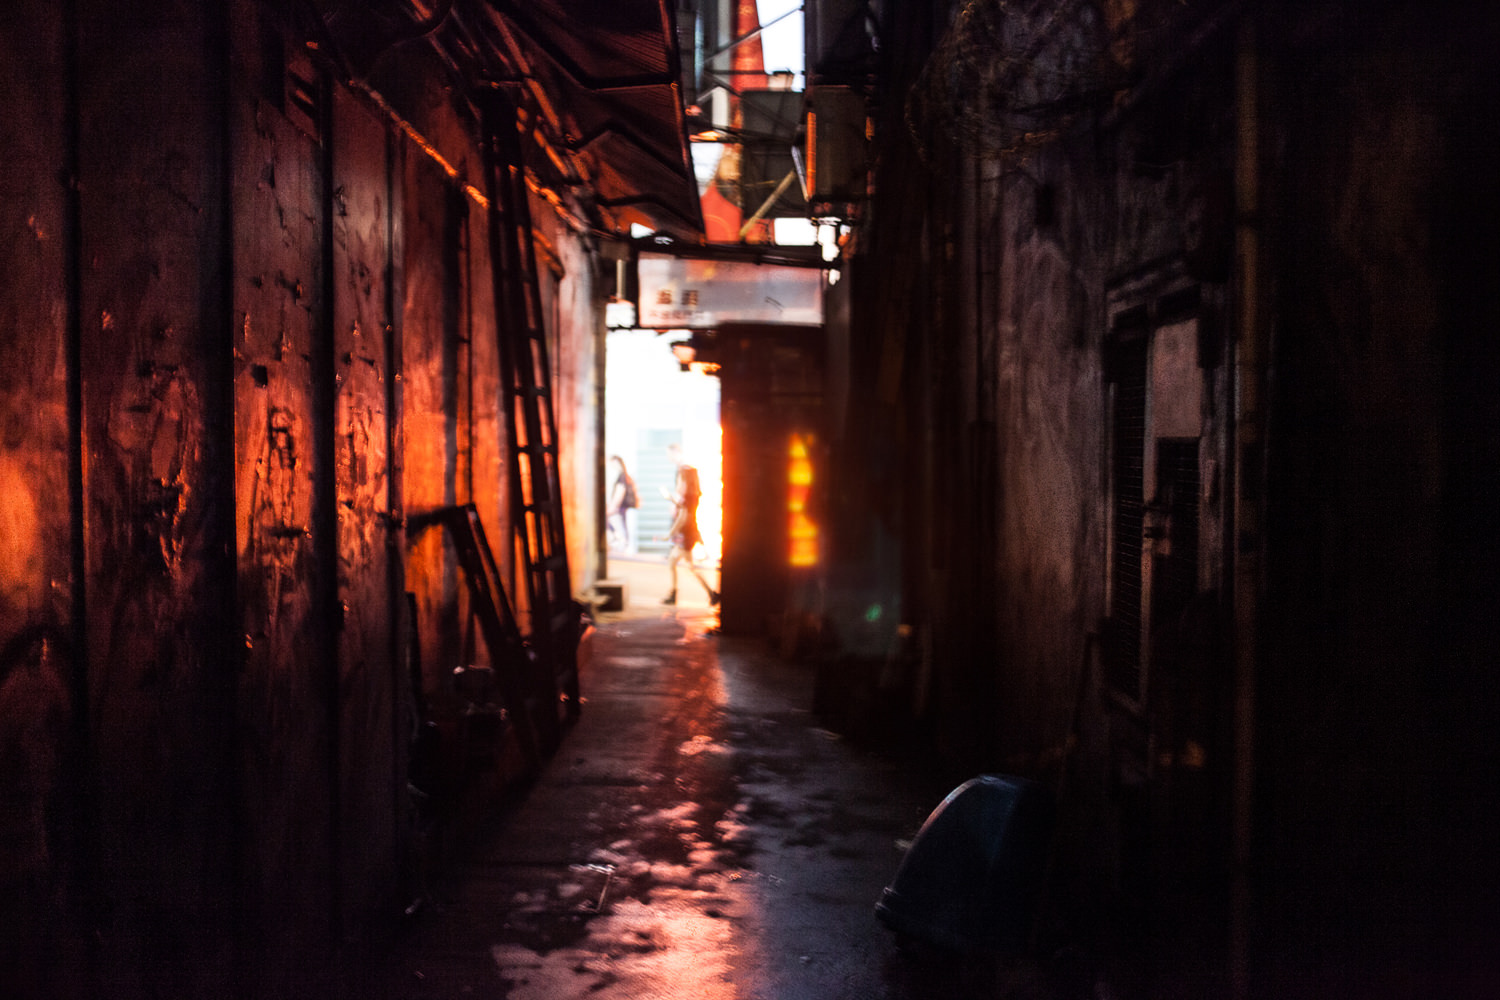 I have no idea where in Hong Kong this alley is. I'm guessing near Lan Kwai Fong.